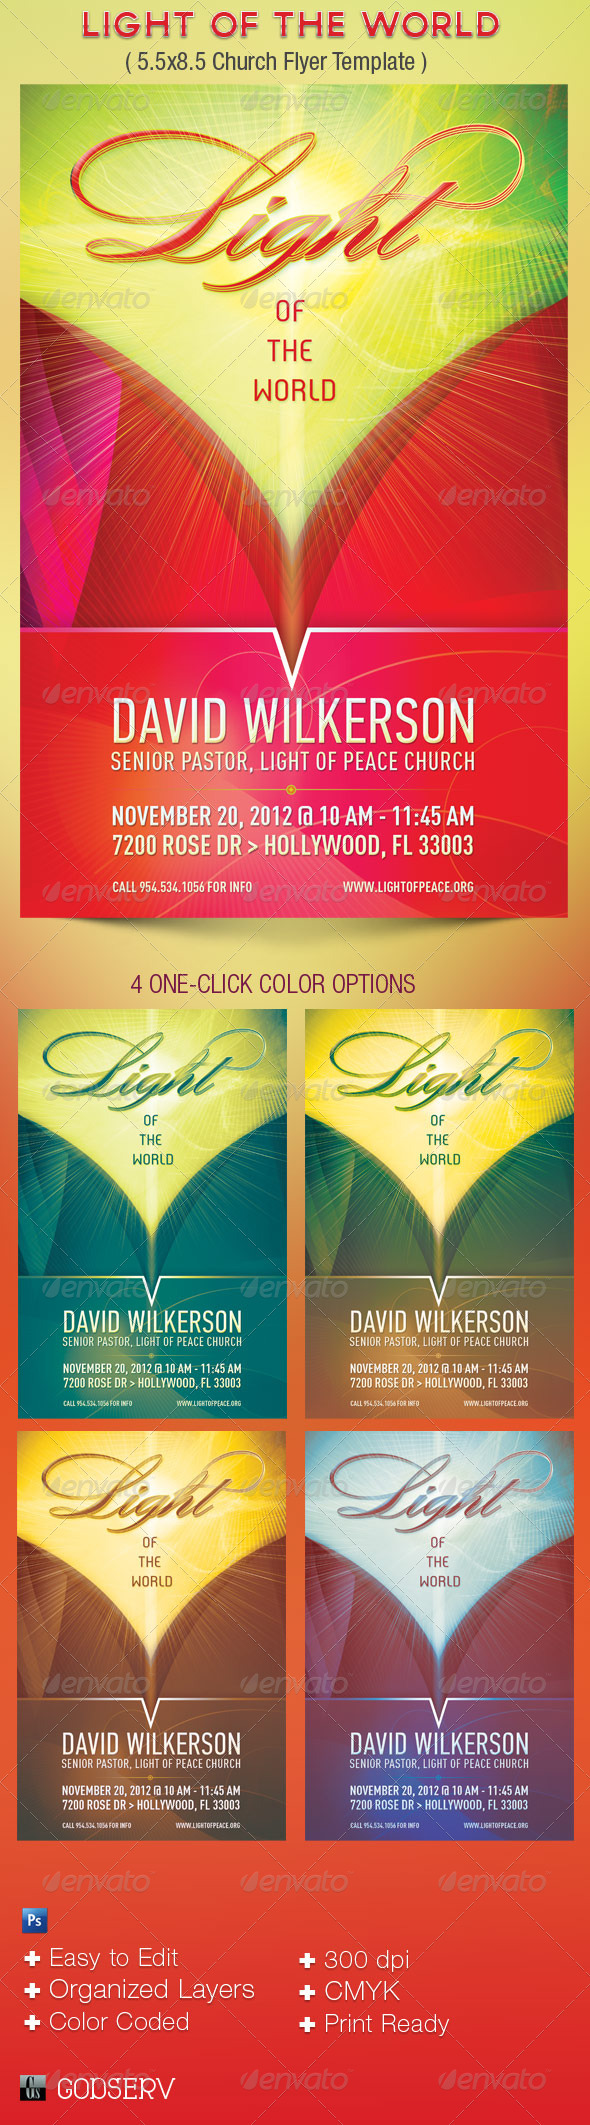 Light Church Flyer Template - Church Flyers